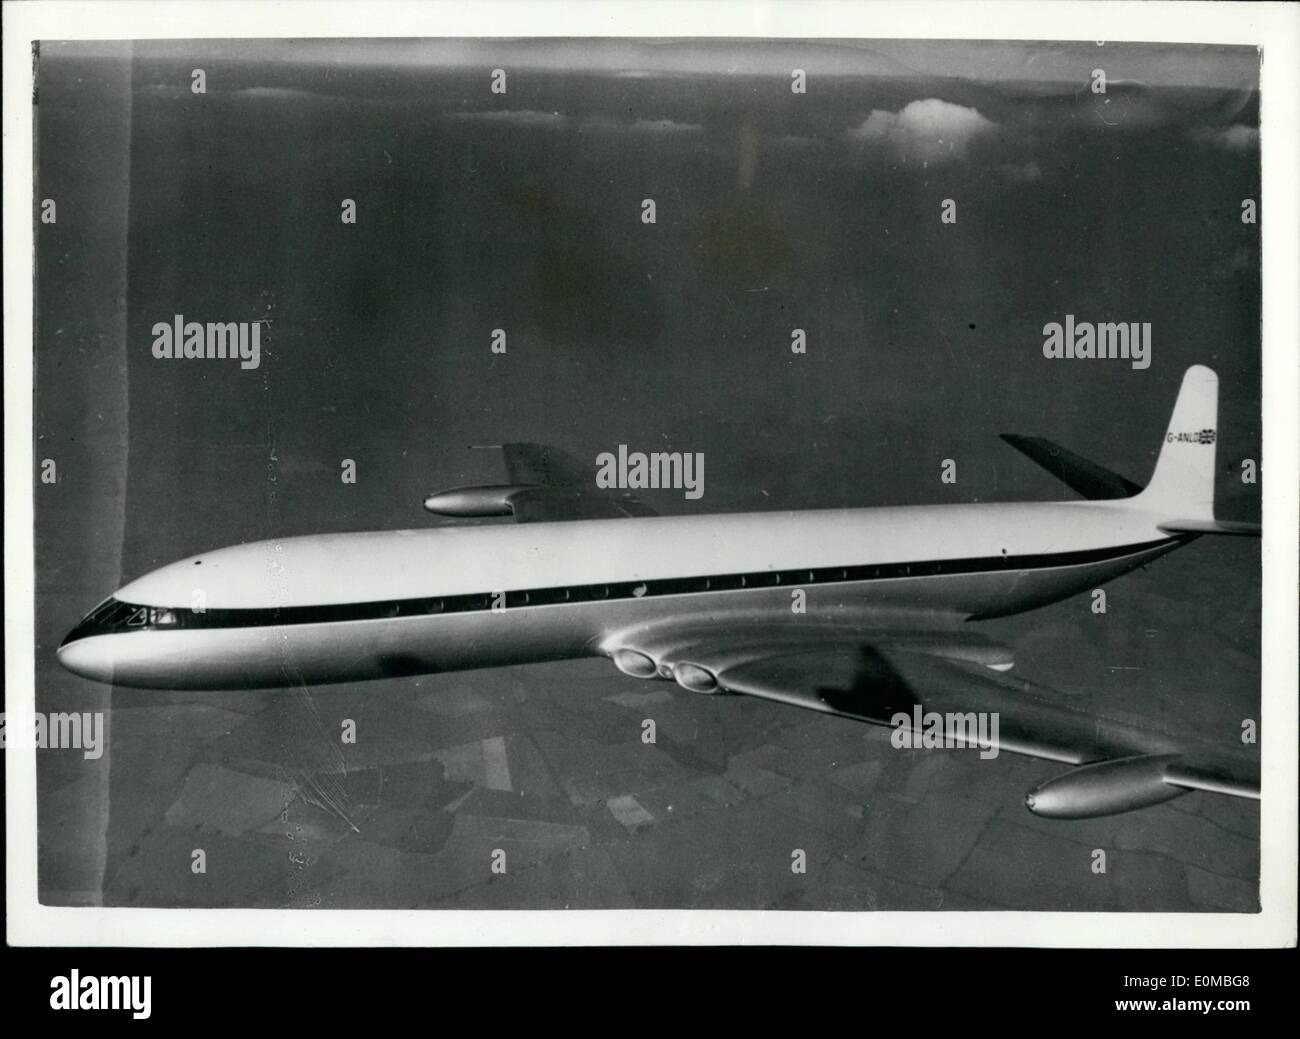 Jul. 20, 1954 - 20-7-54 The Comet III takes to the air. Britain's latest aircraft under test. The Comet III made a surprise maiden flight yesterday from the De Havilland airport at Hatfield, Hants. The machine is a bigger, faster long range version of the earlier Comets. It remained airborne for ninety minutes under the control of the De Havilland Chief Test Pilot Group Captain John Catseyes Cunningham. Before the machine is put into service it will have to undergo tests lasting about two years - Stock Image